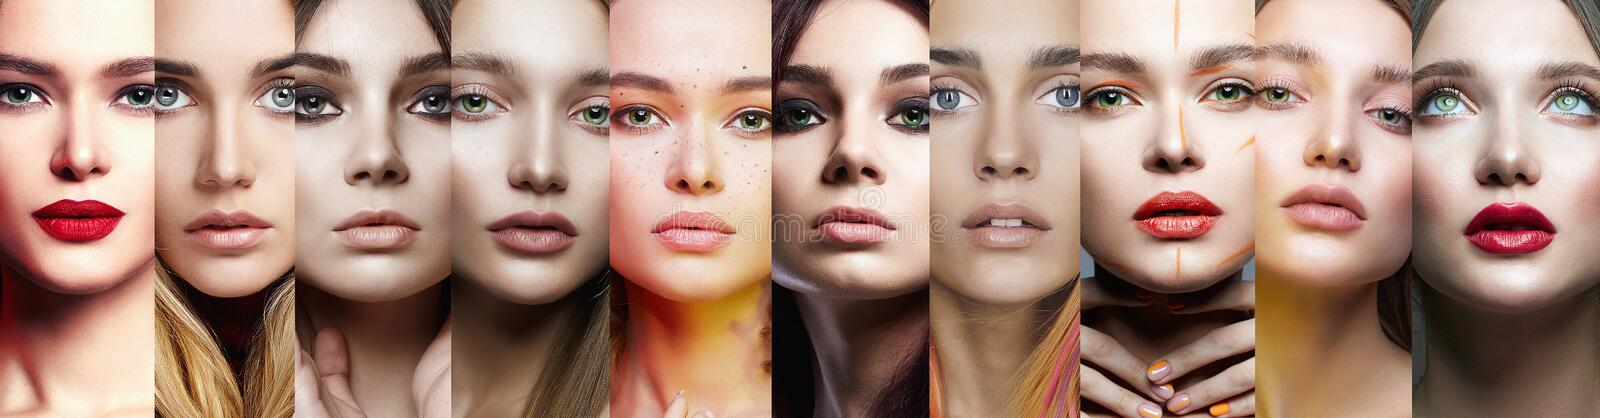 Female faces. collage of beautiful women stock photography